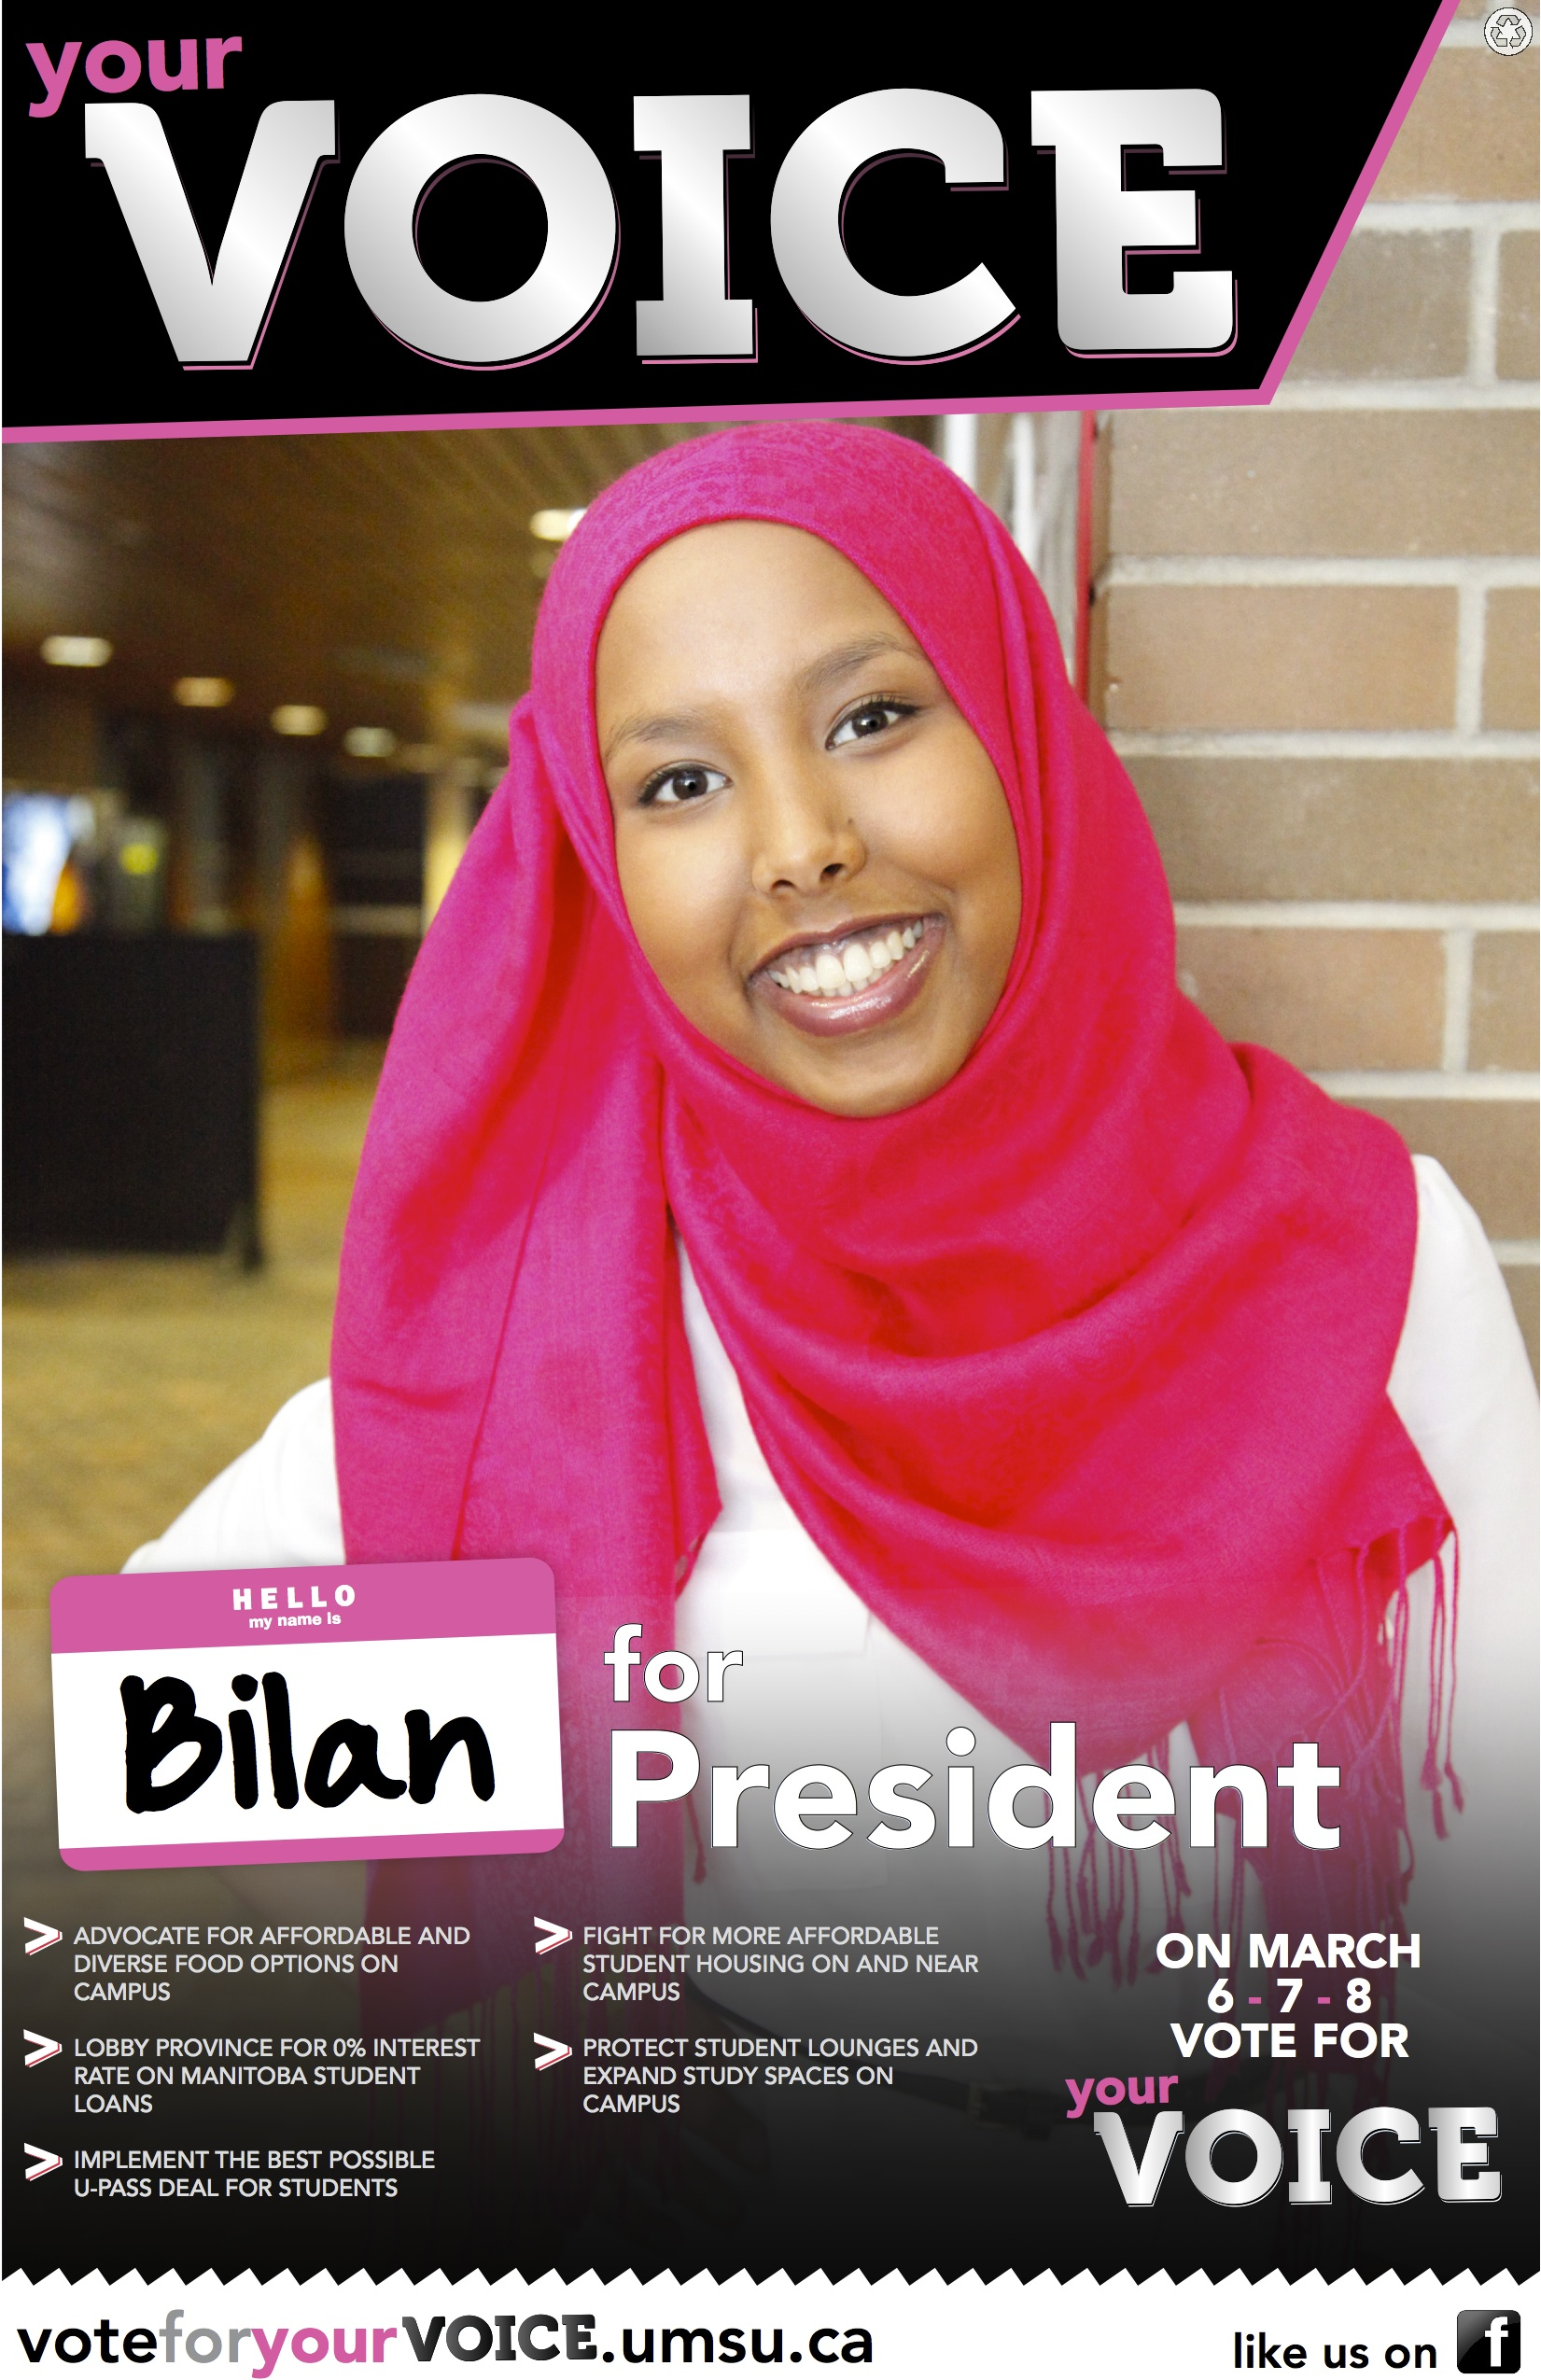 Bilan Arte's March 2012 election campaign poster